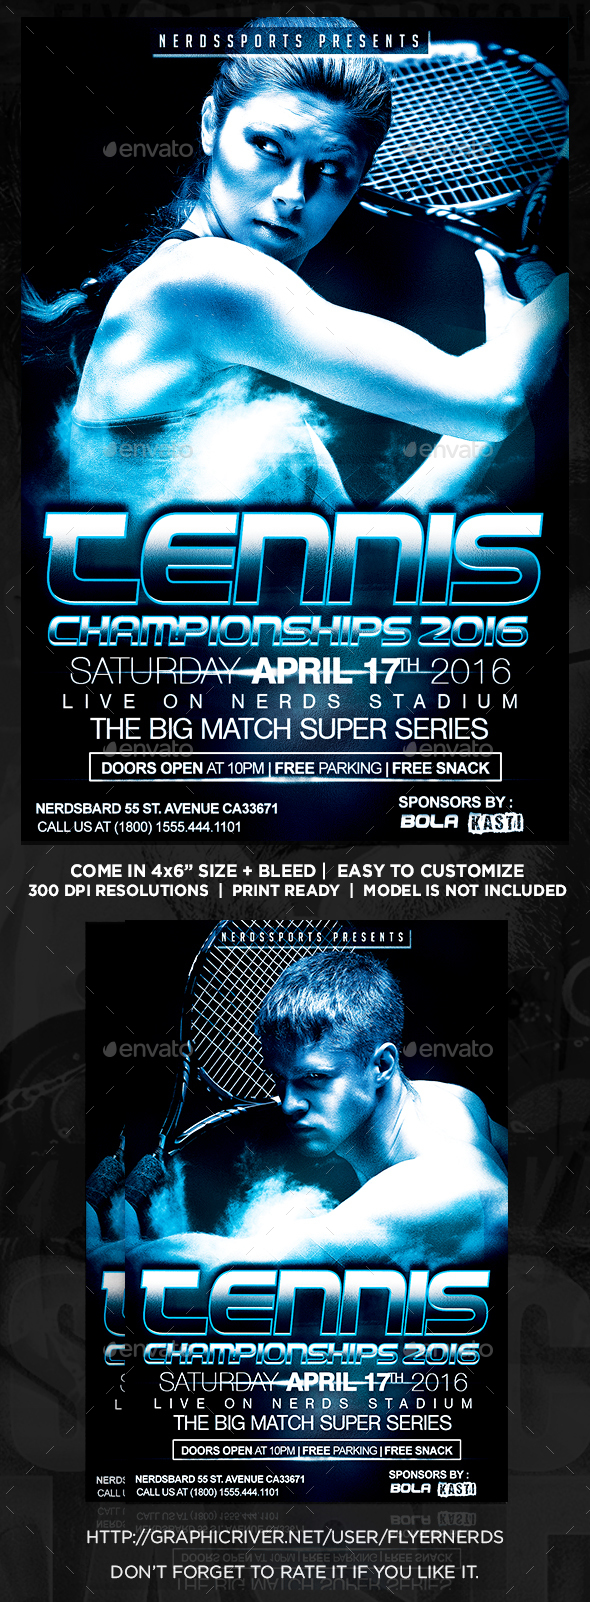 Tennis Championships 2K16 Sports Flyer - Sports Events